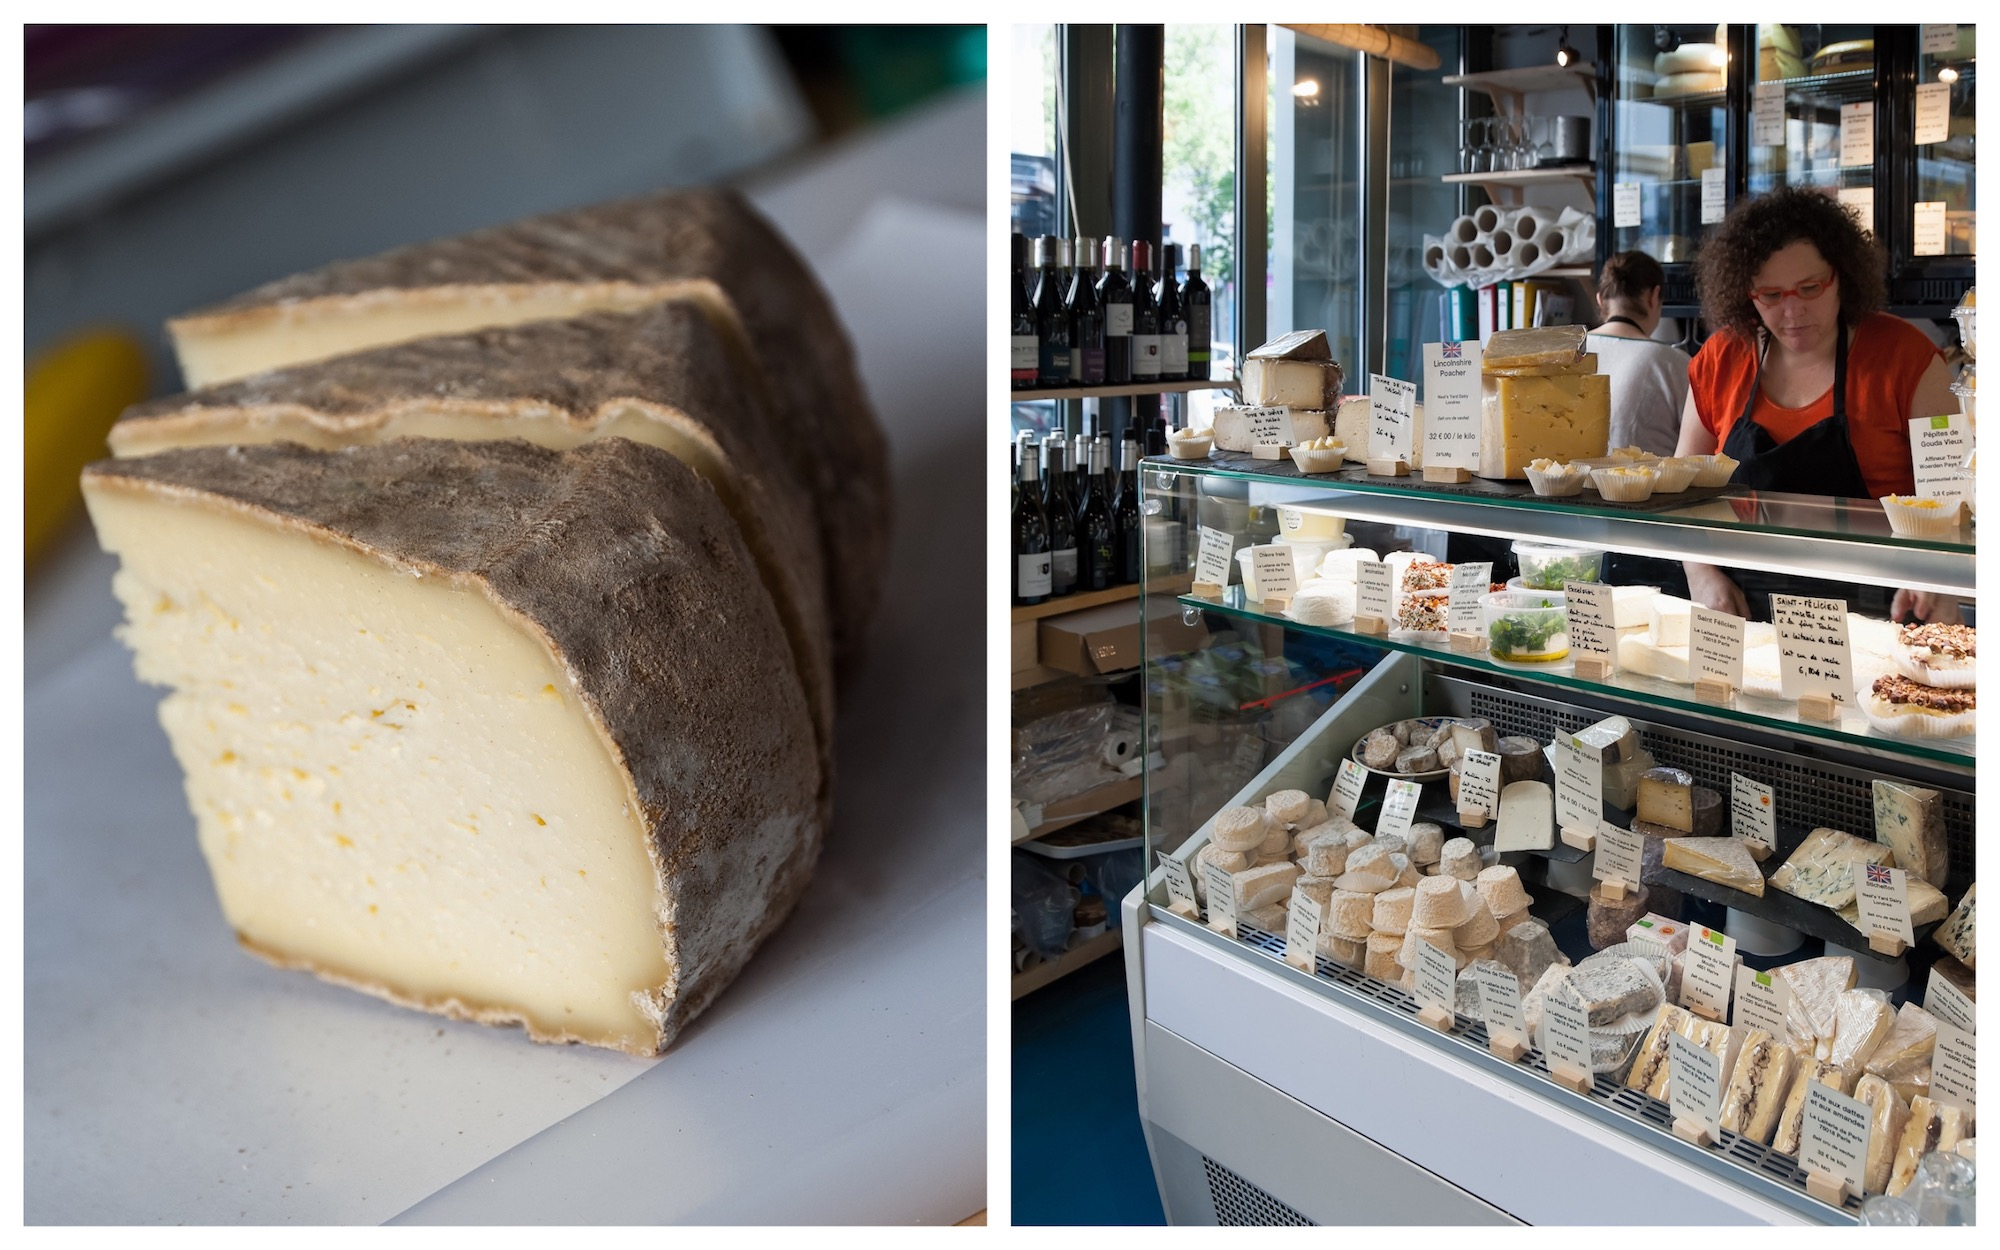 Slices of Saint Nectaire cheese at Pierre Coulon's Paris cheese shop (left). La Laiterie cheese-maker's in Paris and its counter full of cheeses made onsite (right).